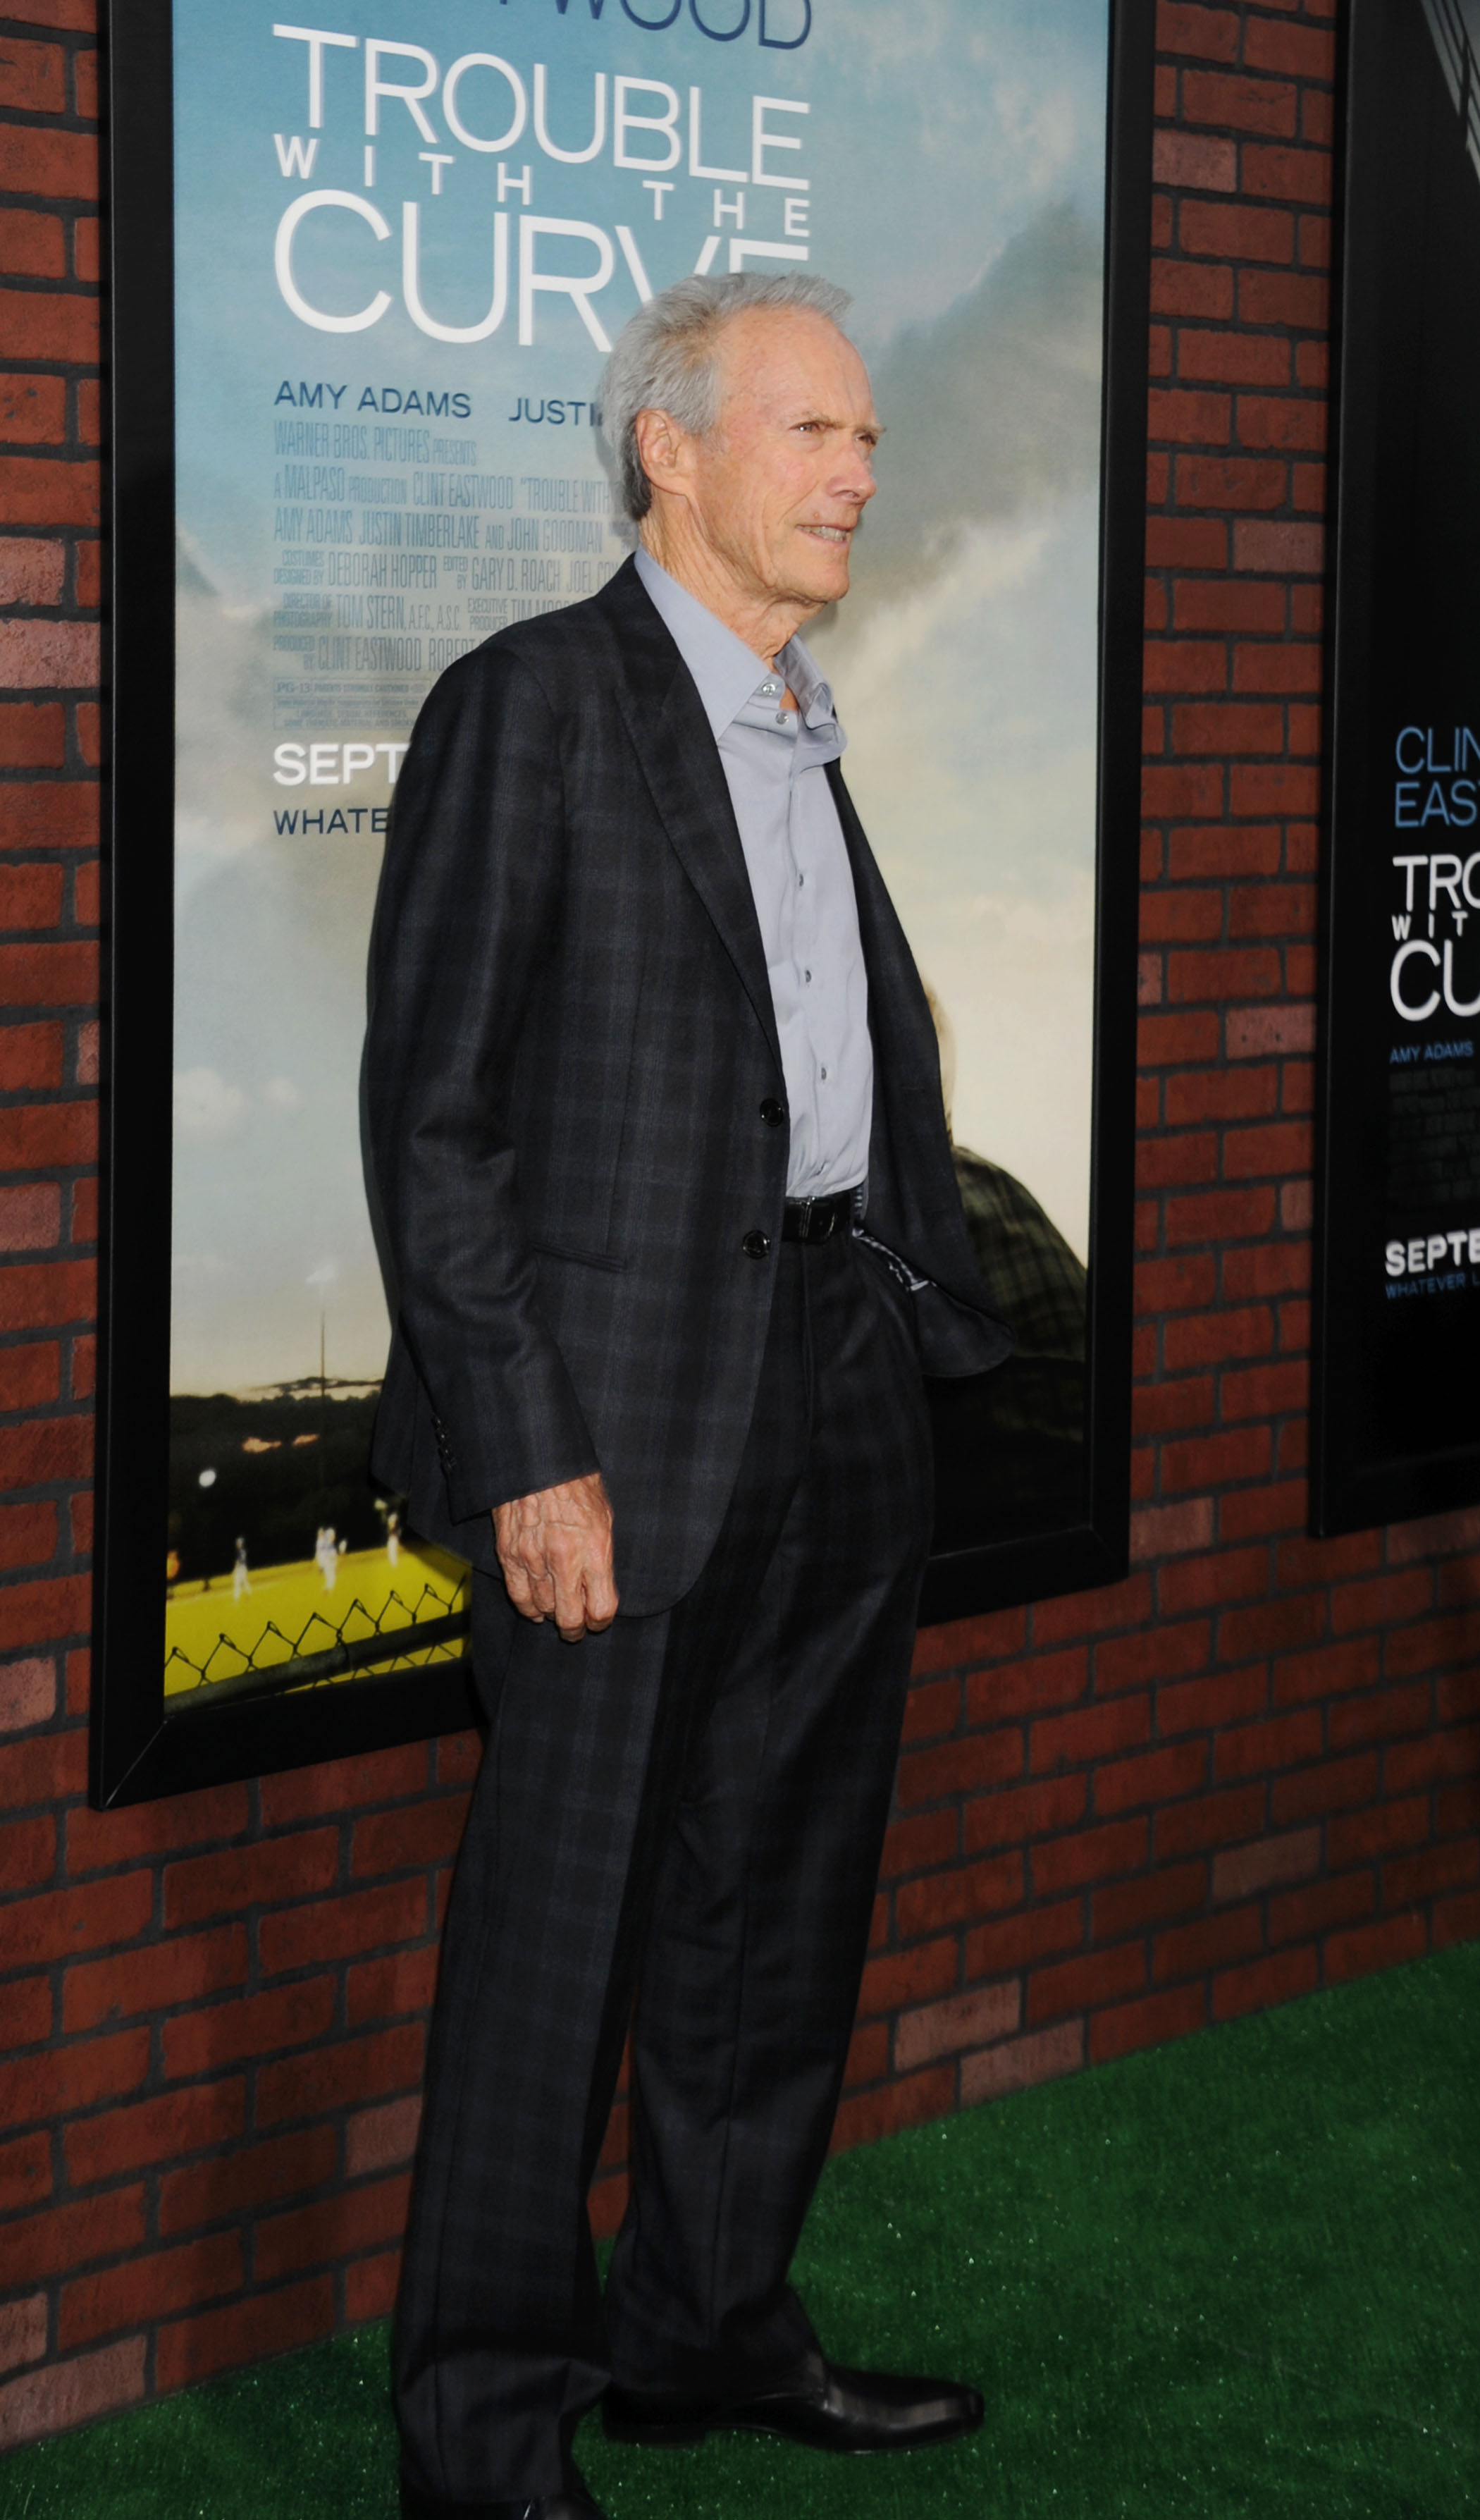 Clint Eastwood standing in front a poster for Trouble with the Curve